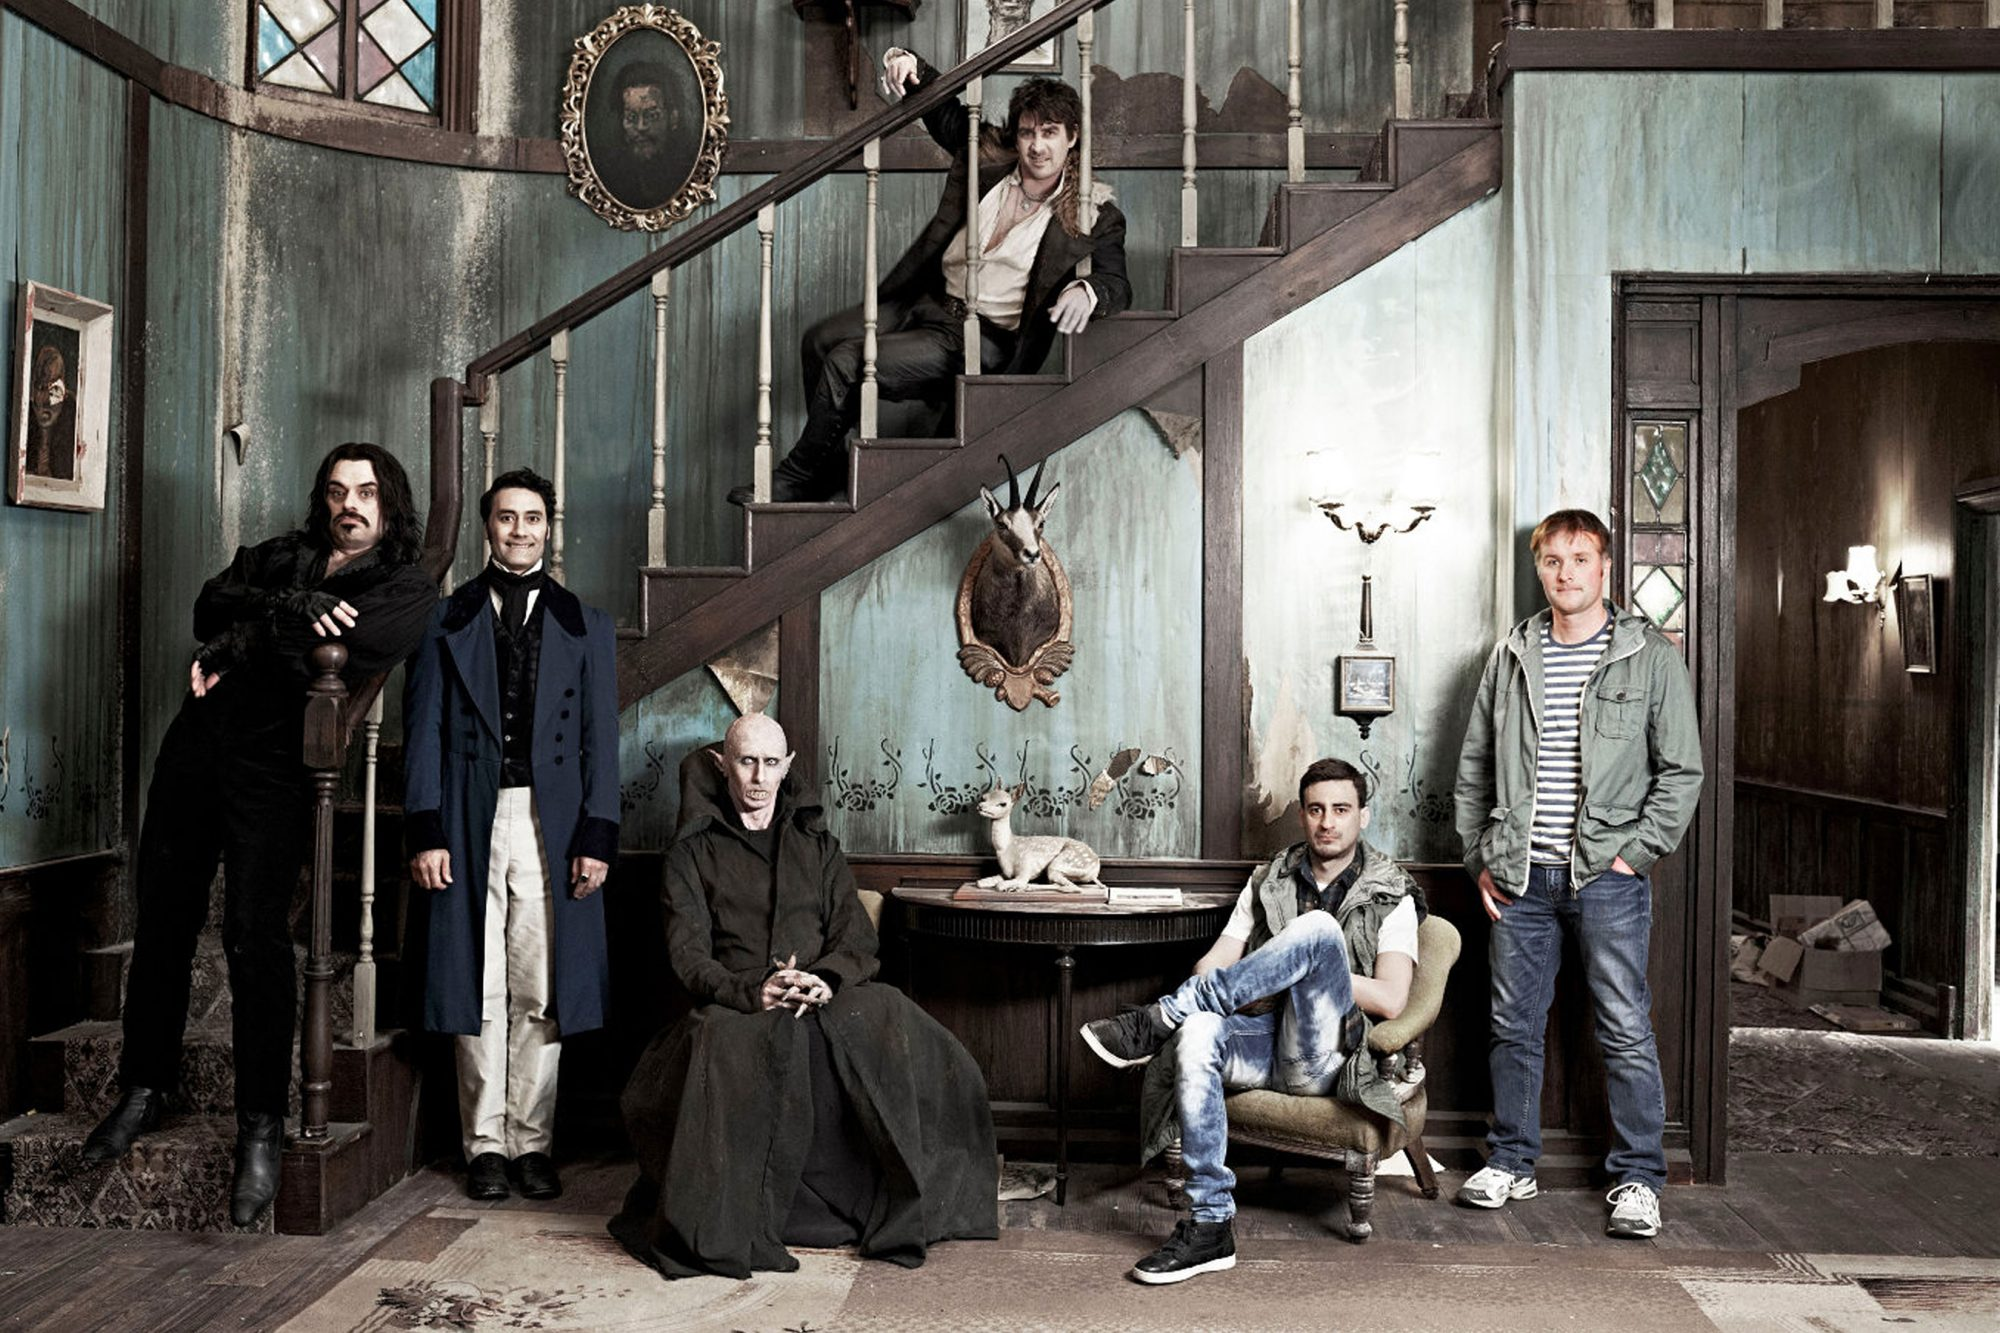 'What We Do In The Shadows' Film - 2014